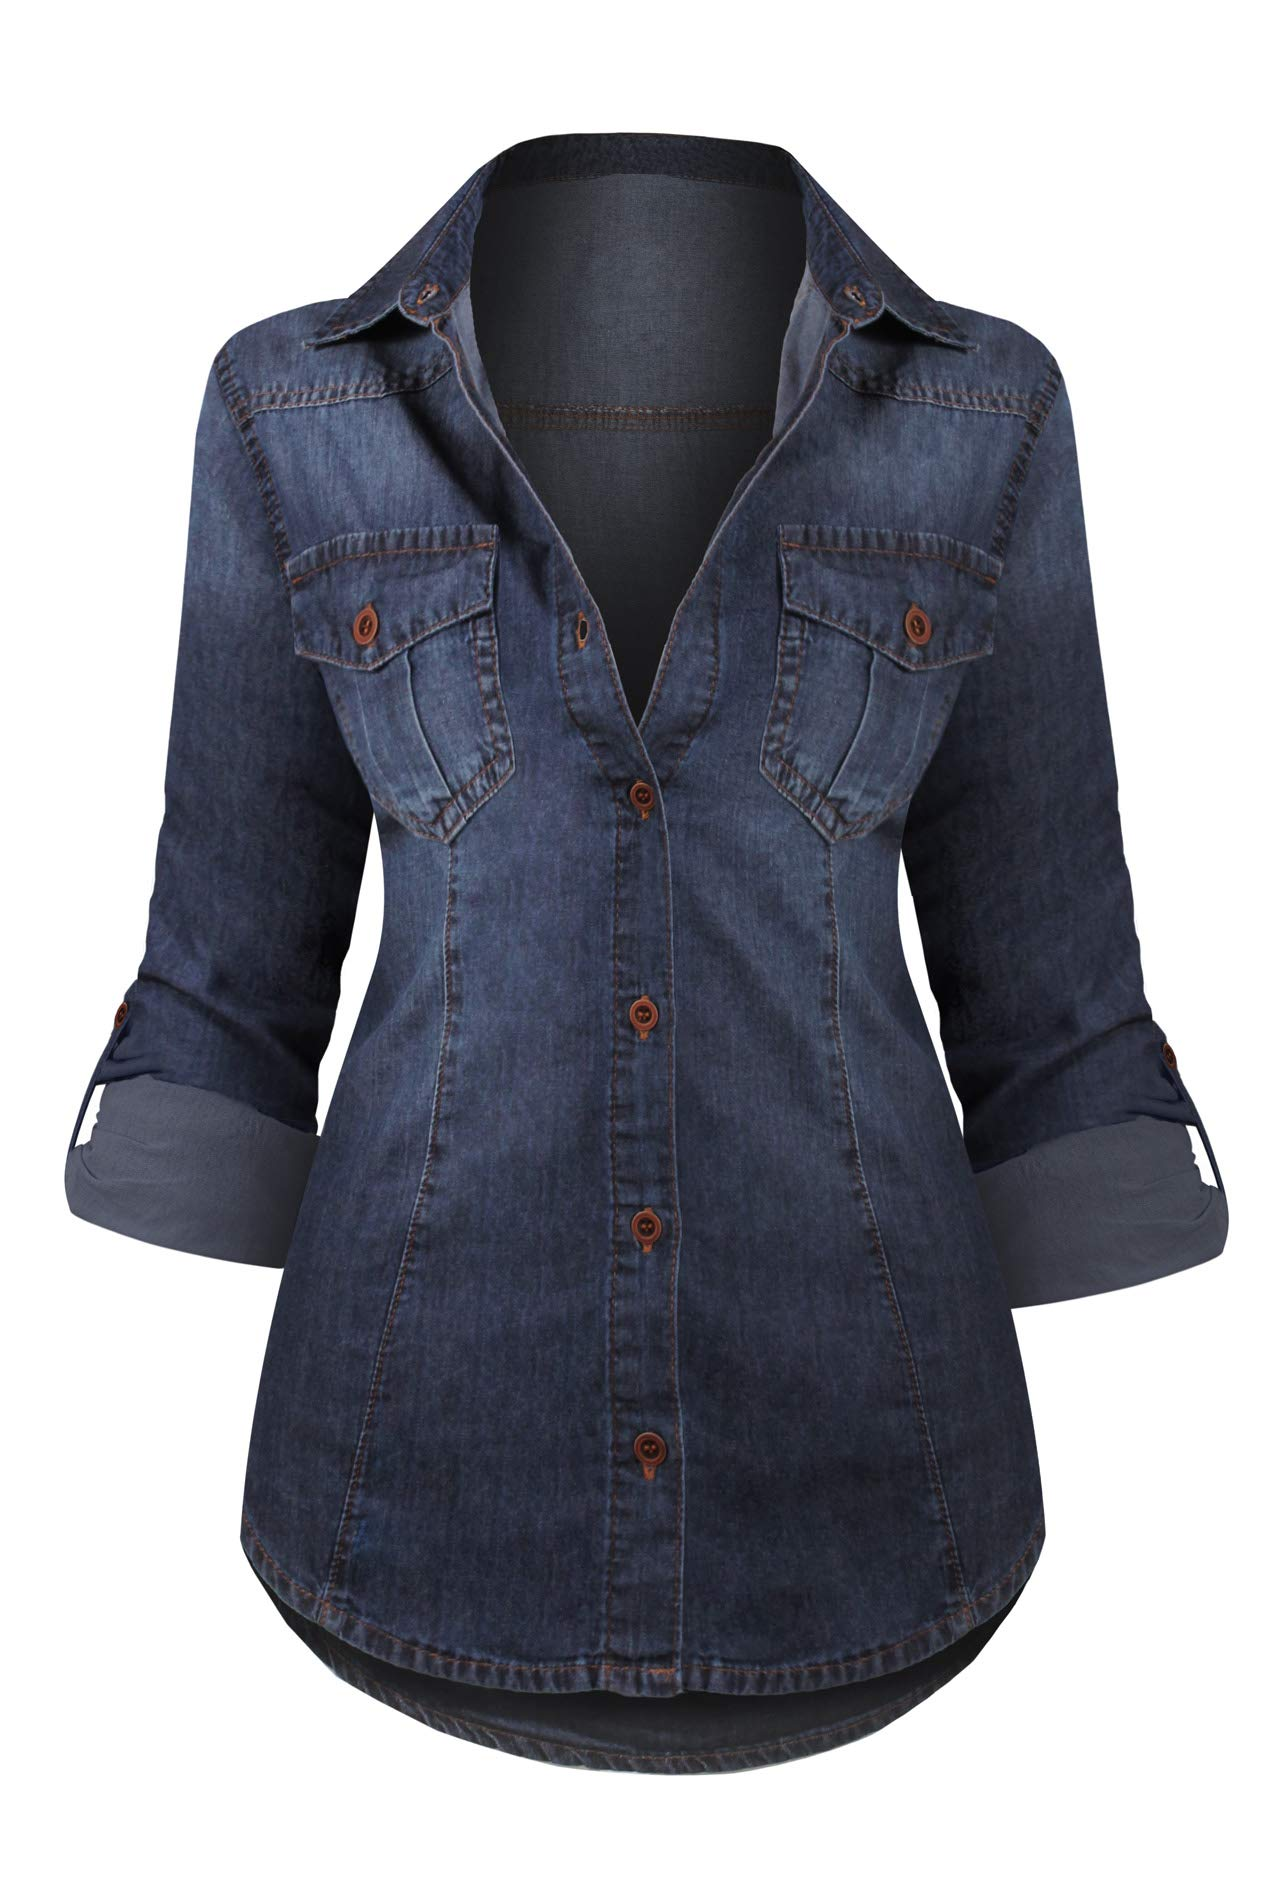 HOT FROM HOLLYWOOD Women's Long Sleeve Western Button Up Casual Fitted Denim Washed Tunic Top,Dark Denim_dj101,XX-Large